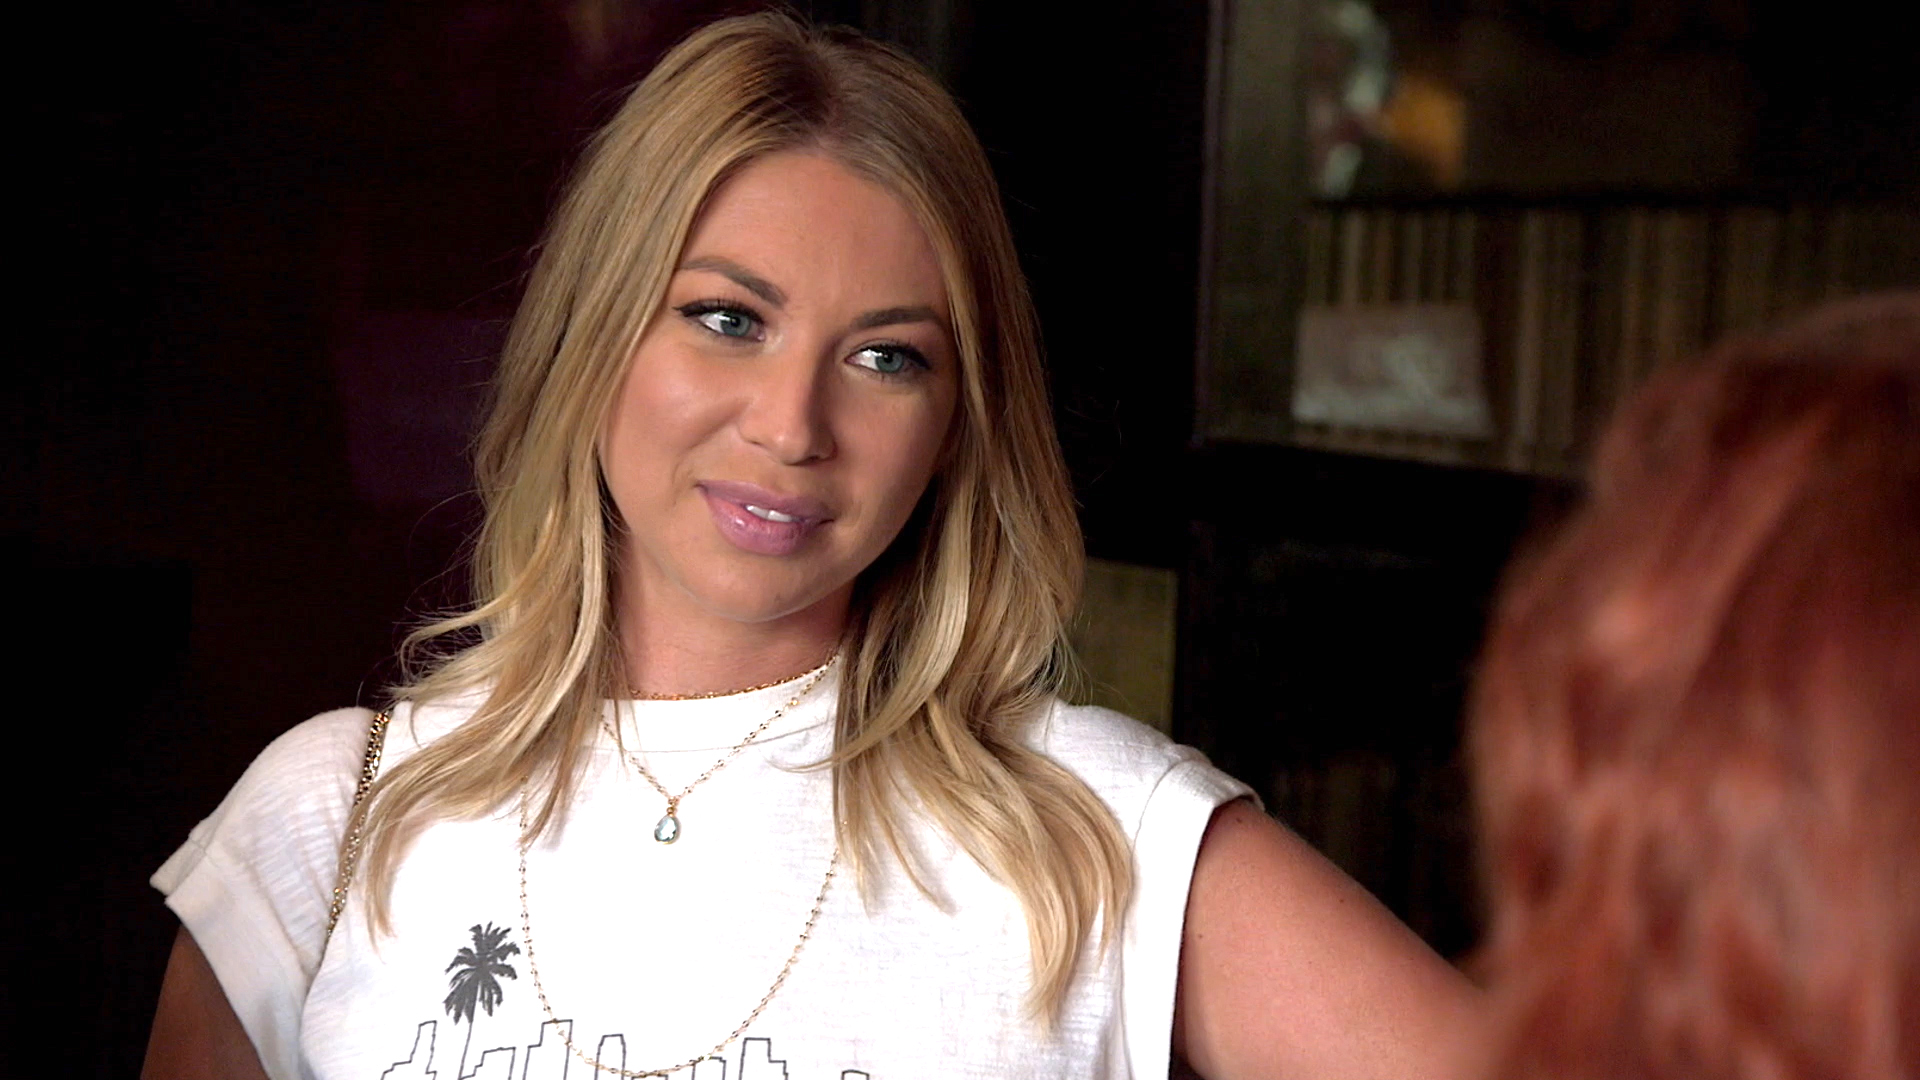 Next on Vanderpump Rules: Why Is Stassi's Mom So Upset?